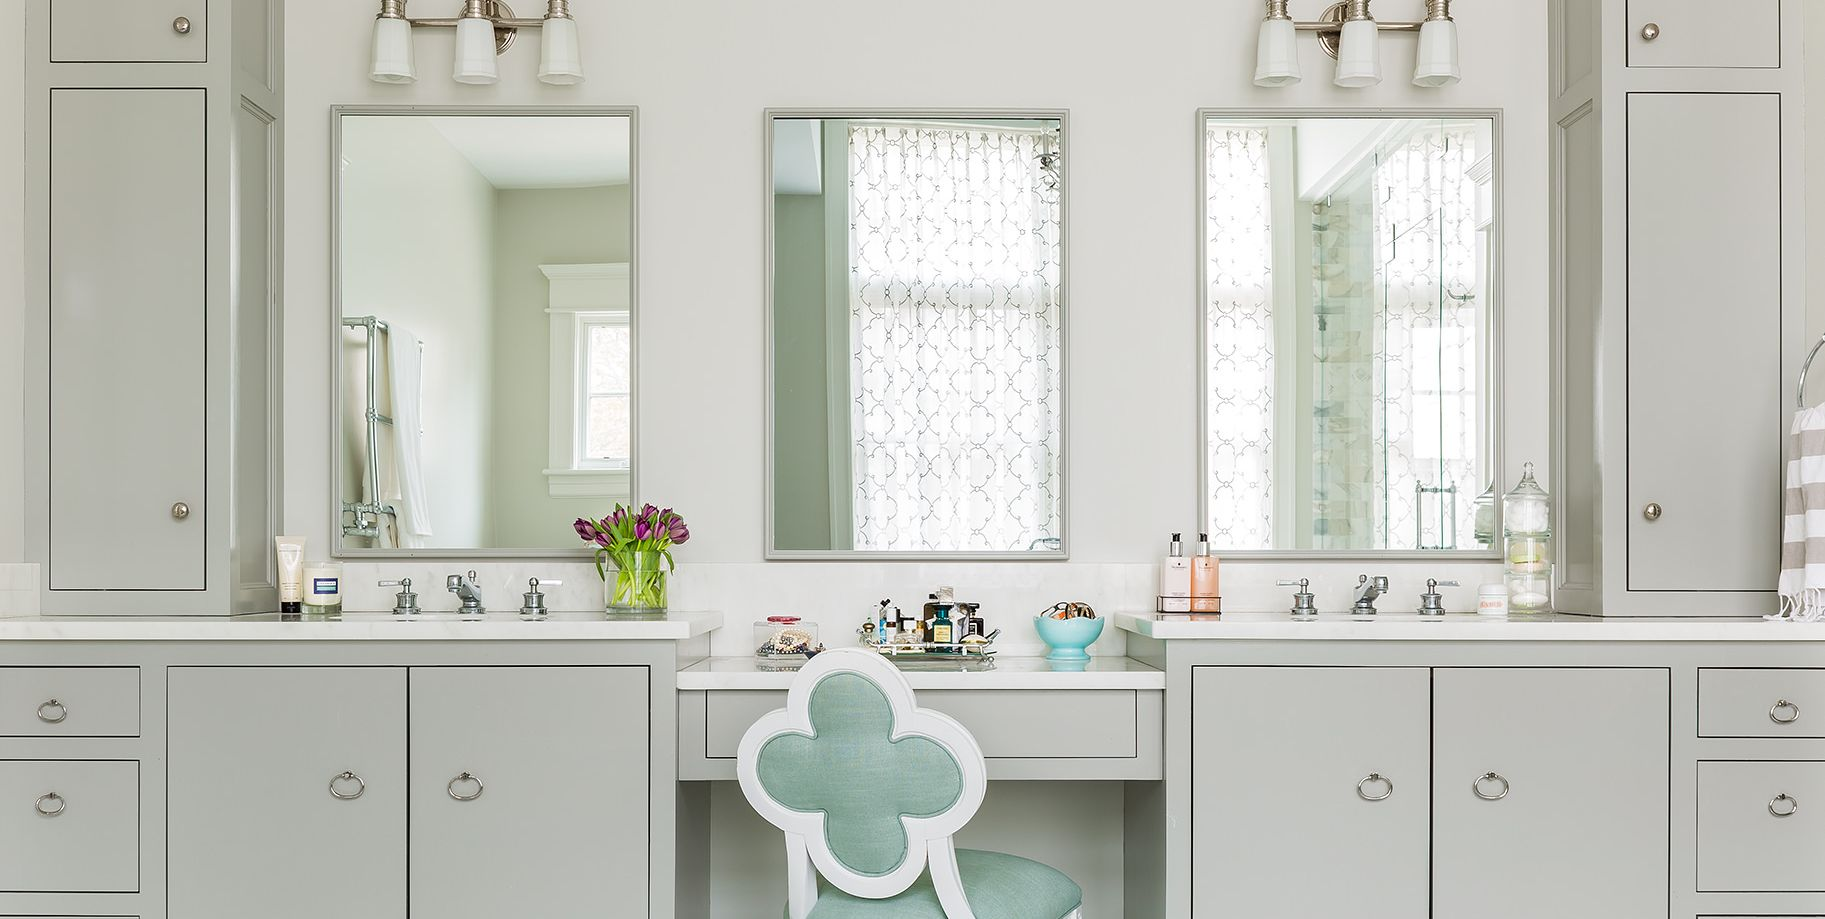 10 Bathrooms That Prove Gray & White Is The New Black & White